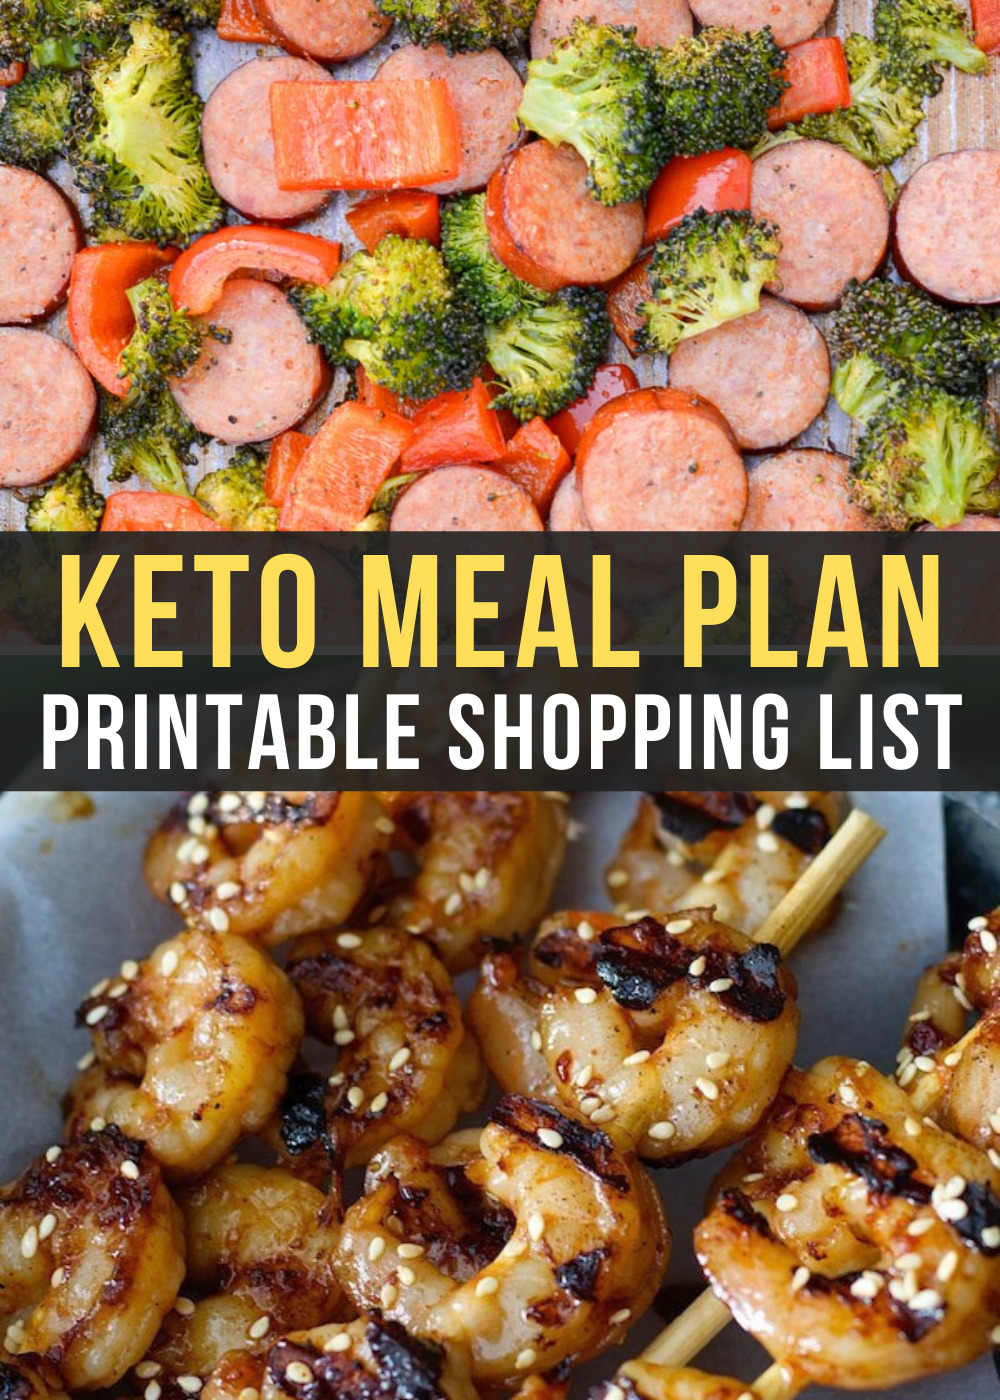 Ready to try keto but not wanting to spend hours meal planning? I'm here to help! This week's Easy Keto Meal Plan includes 5 easy low-carb dinner as well as a keto-friendly dessert. I've included net carb counts, serving amounts, and a printable shopping list!